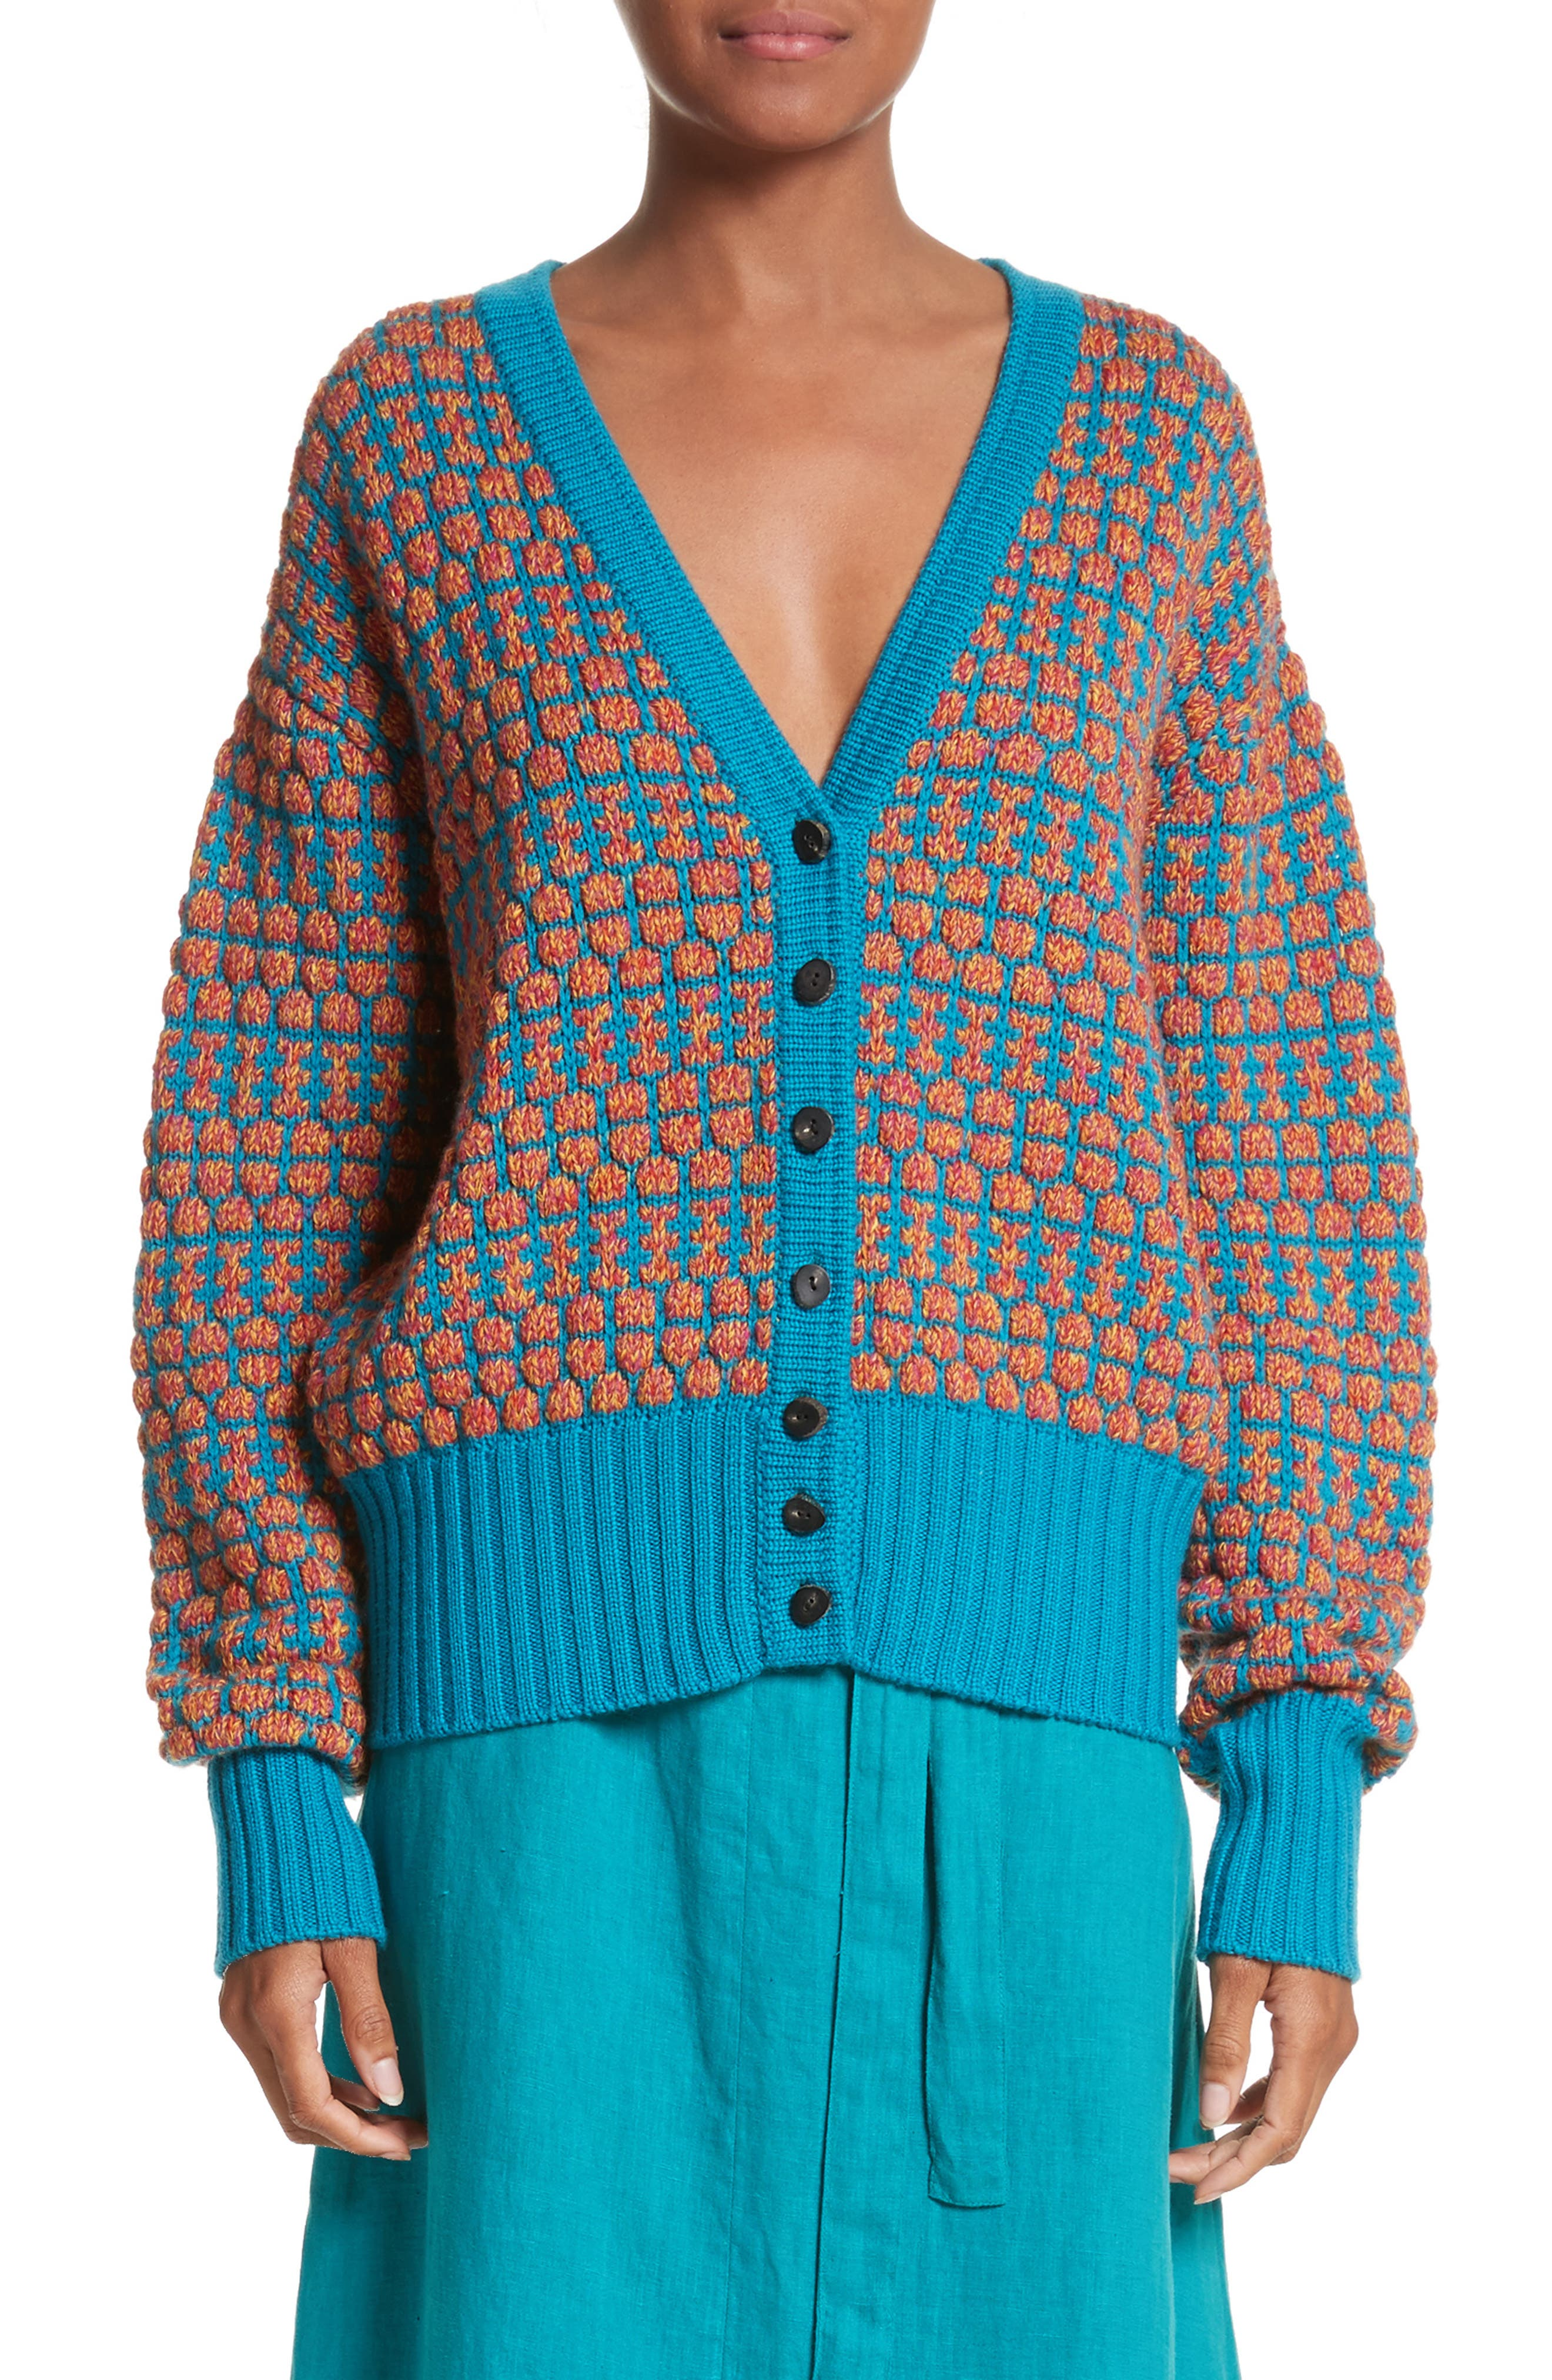 Izee Floral Button Cardigan,                             Main thumbnail 1, color,                             400